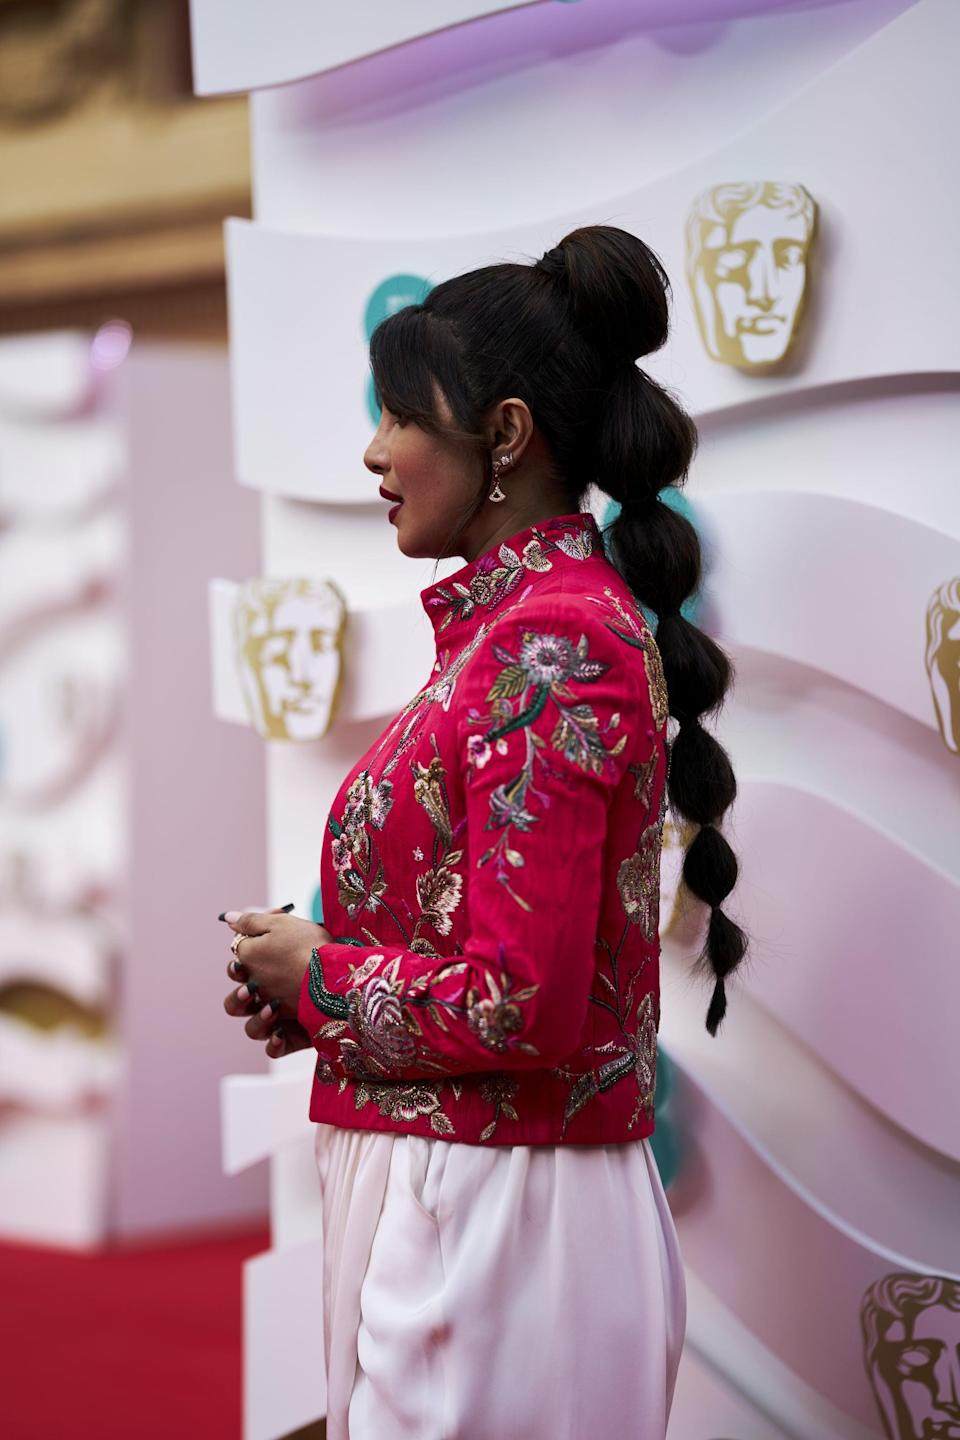 "<p>Chopra Jonas decided to try out one of 2021's biggest hairstyle trends - the <a href=""https://www.popsugar.com/beauty/priyanka-chopra-bubble-braid-hairstyle-bafta-awards-48264070"" class=""link rapid-noclick-resp"" rel=""nofollow noopener"" target=""_blank"" data-ylk=""slk:bubble ponytail"">bubble ponytail</a> - for the evening. To get that gorgeous volume, hairstylist Luke Pluck Rose sprayed Anomaly Dry Shampoo throughout the tail before adding the hair grips.</p>"